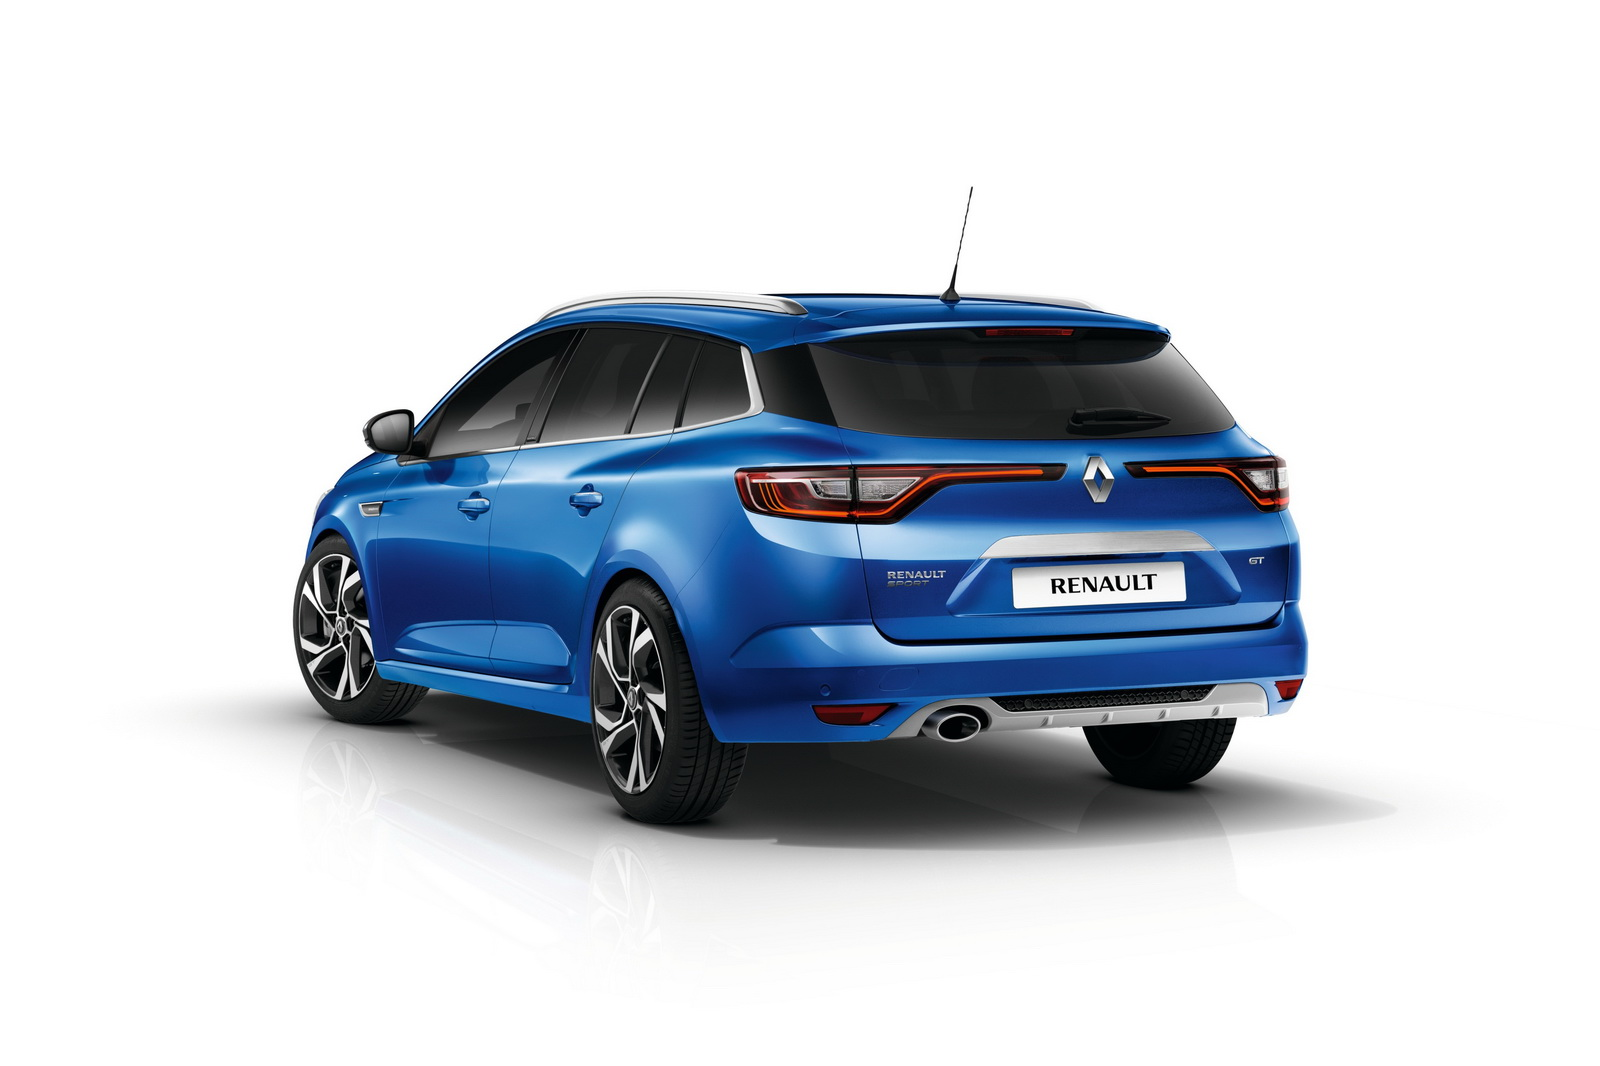 new renault megane estate analyzed in 99 photos carscoops. Black Bedroom Furniture Sets. Home Design Ideas